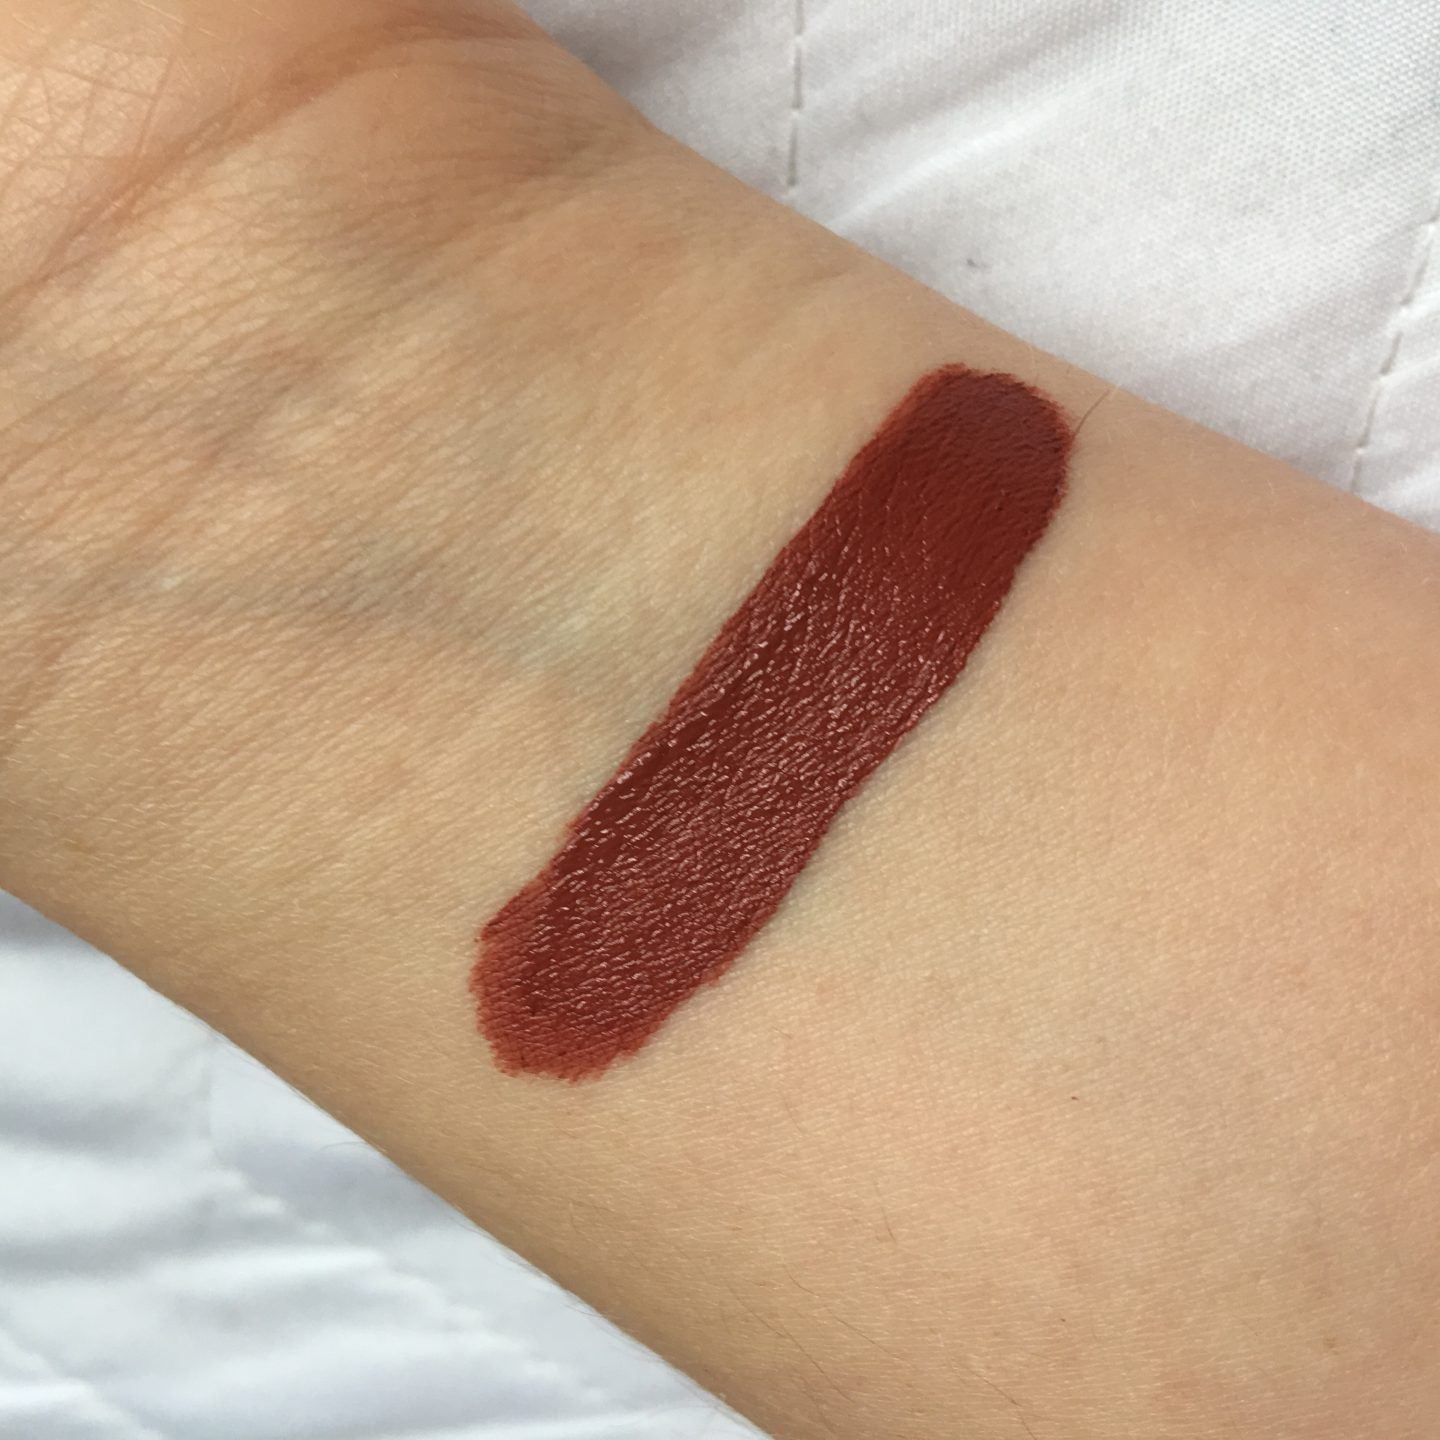 Crown Brush Lip Stain Dusty Rose Review | Swatch